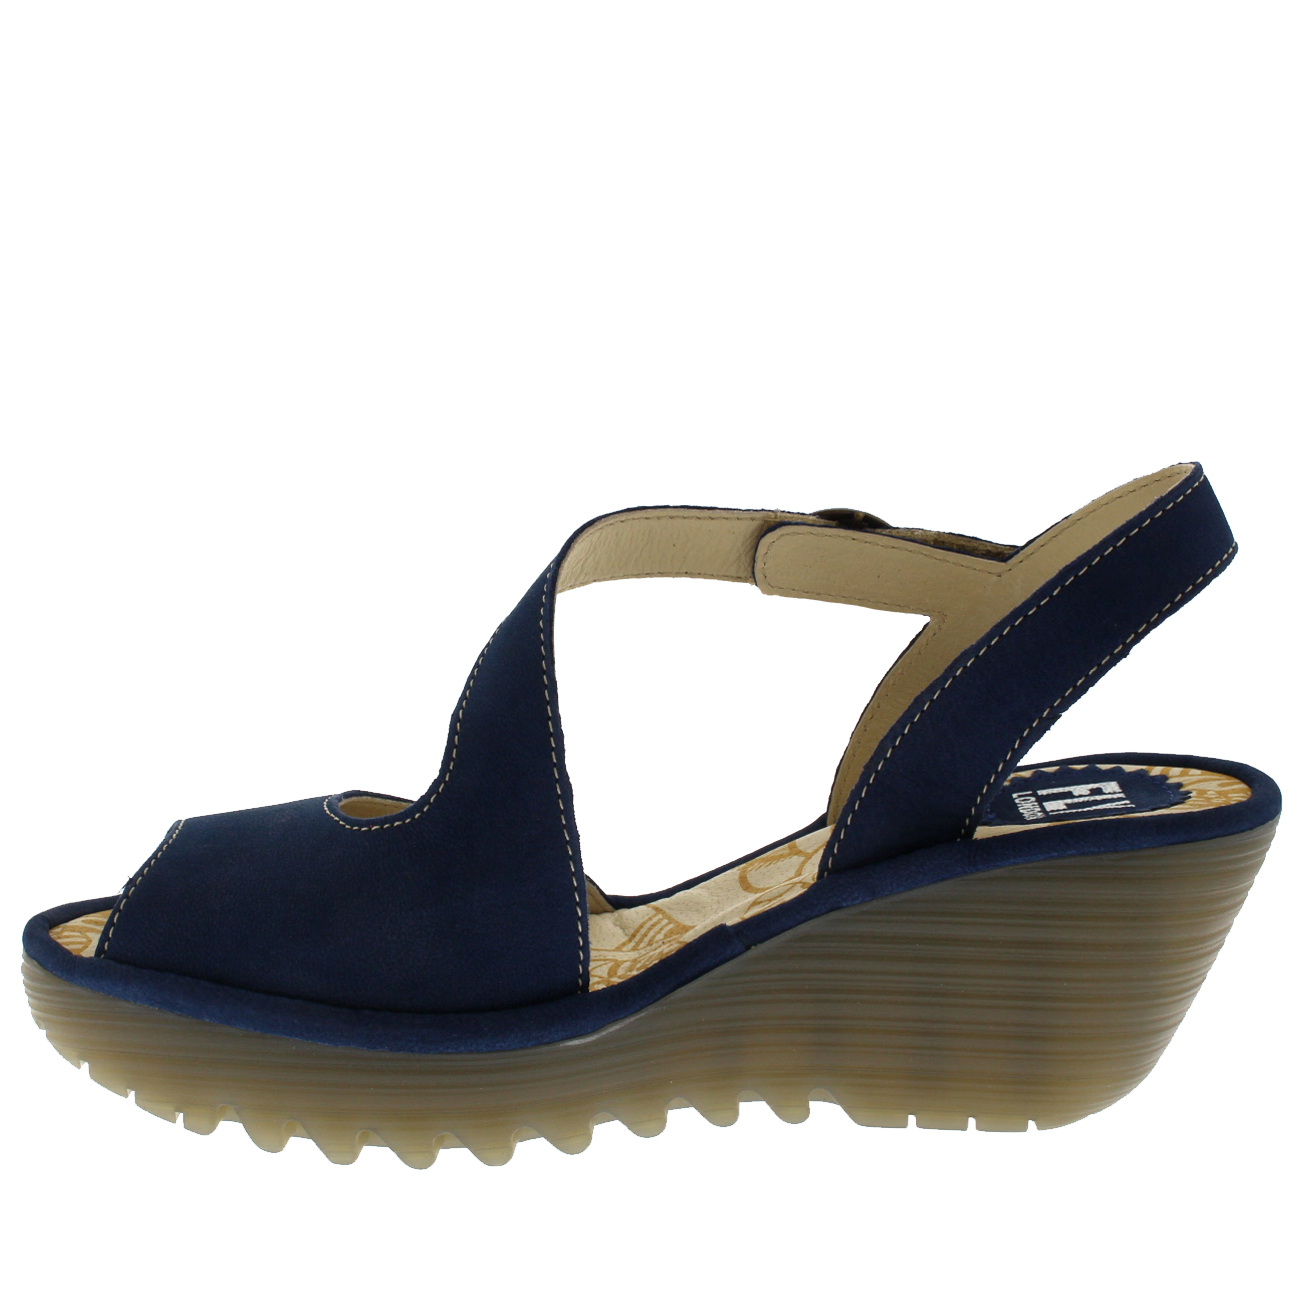 Womens-Fly-London-Yamp-Peep-Toe-Summer-Cut-Out-Buckle-Wedge-Heel-Sandals-US-5-12 thumbnail 11